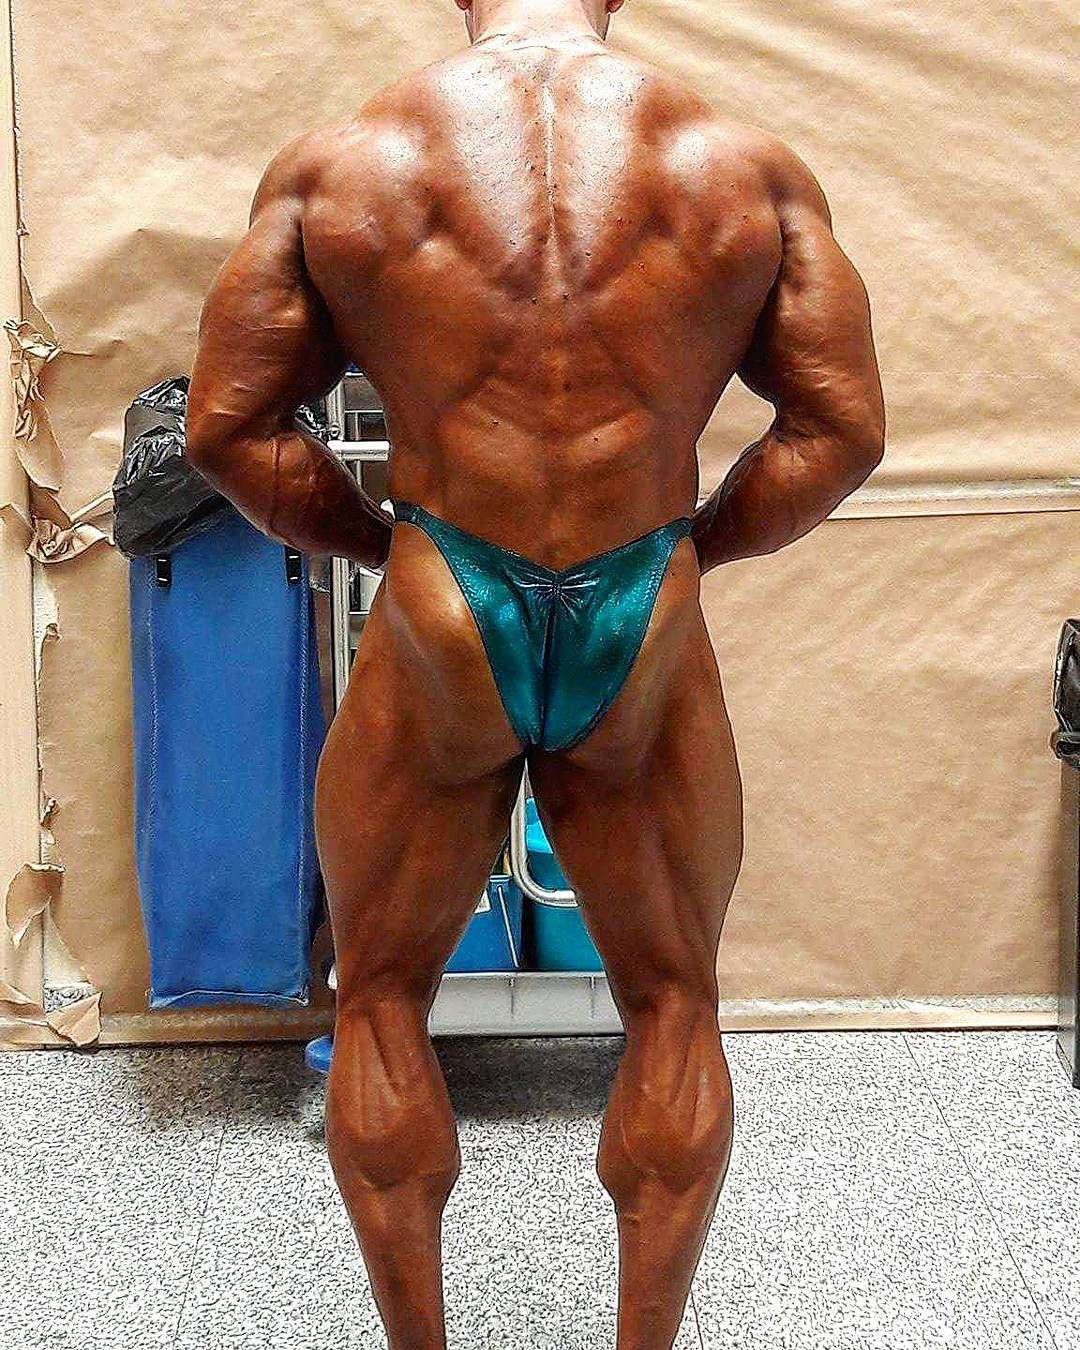 Pin On Npc Bodybuilders Bodybuilding Muscle Ifbb Npc Nabba Wbff